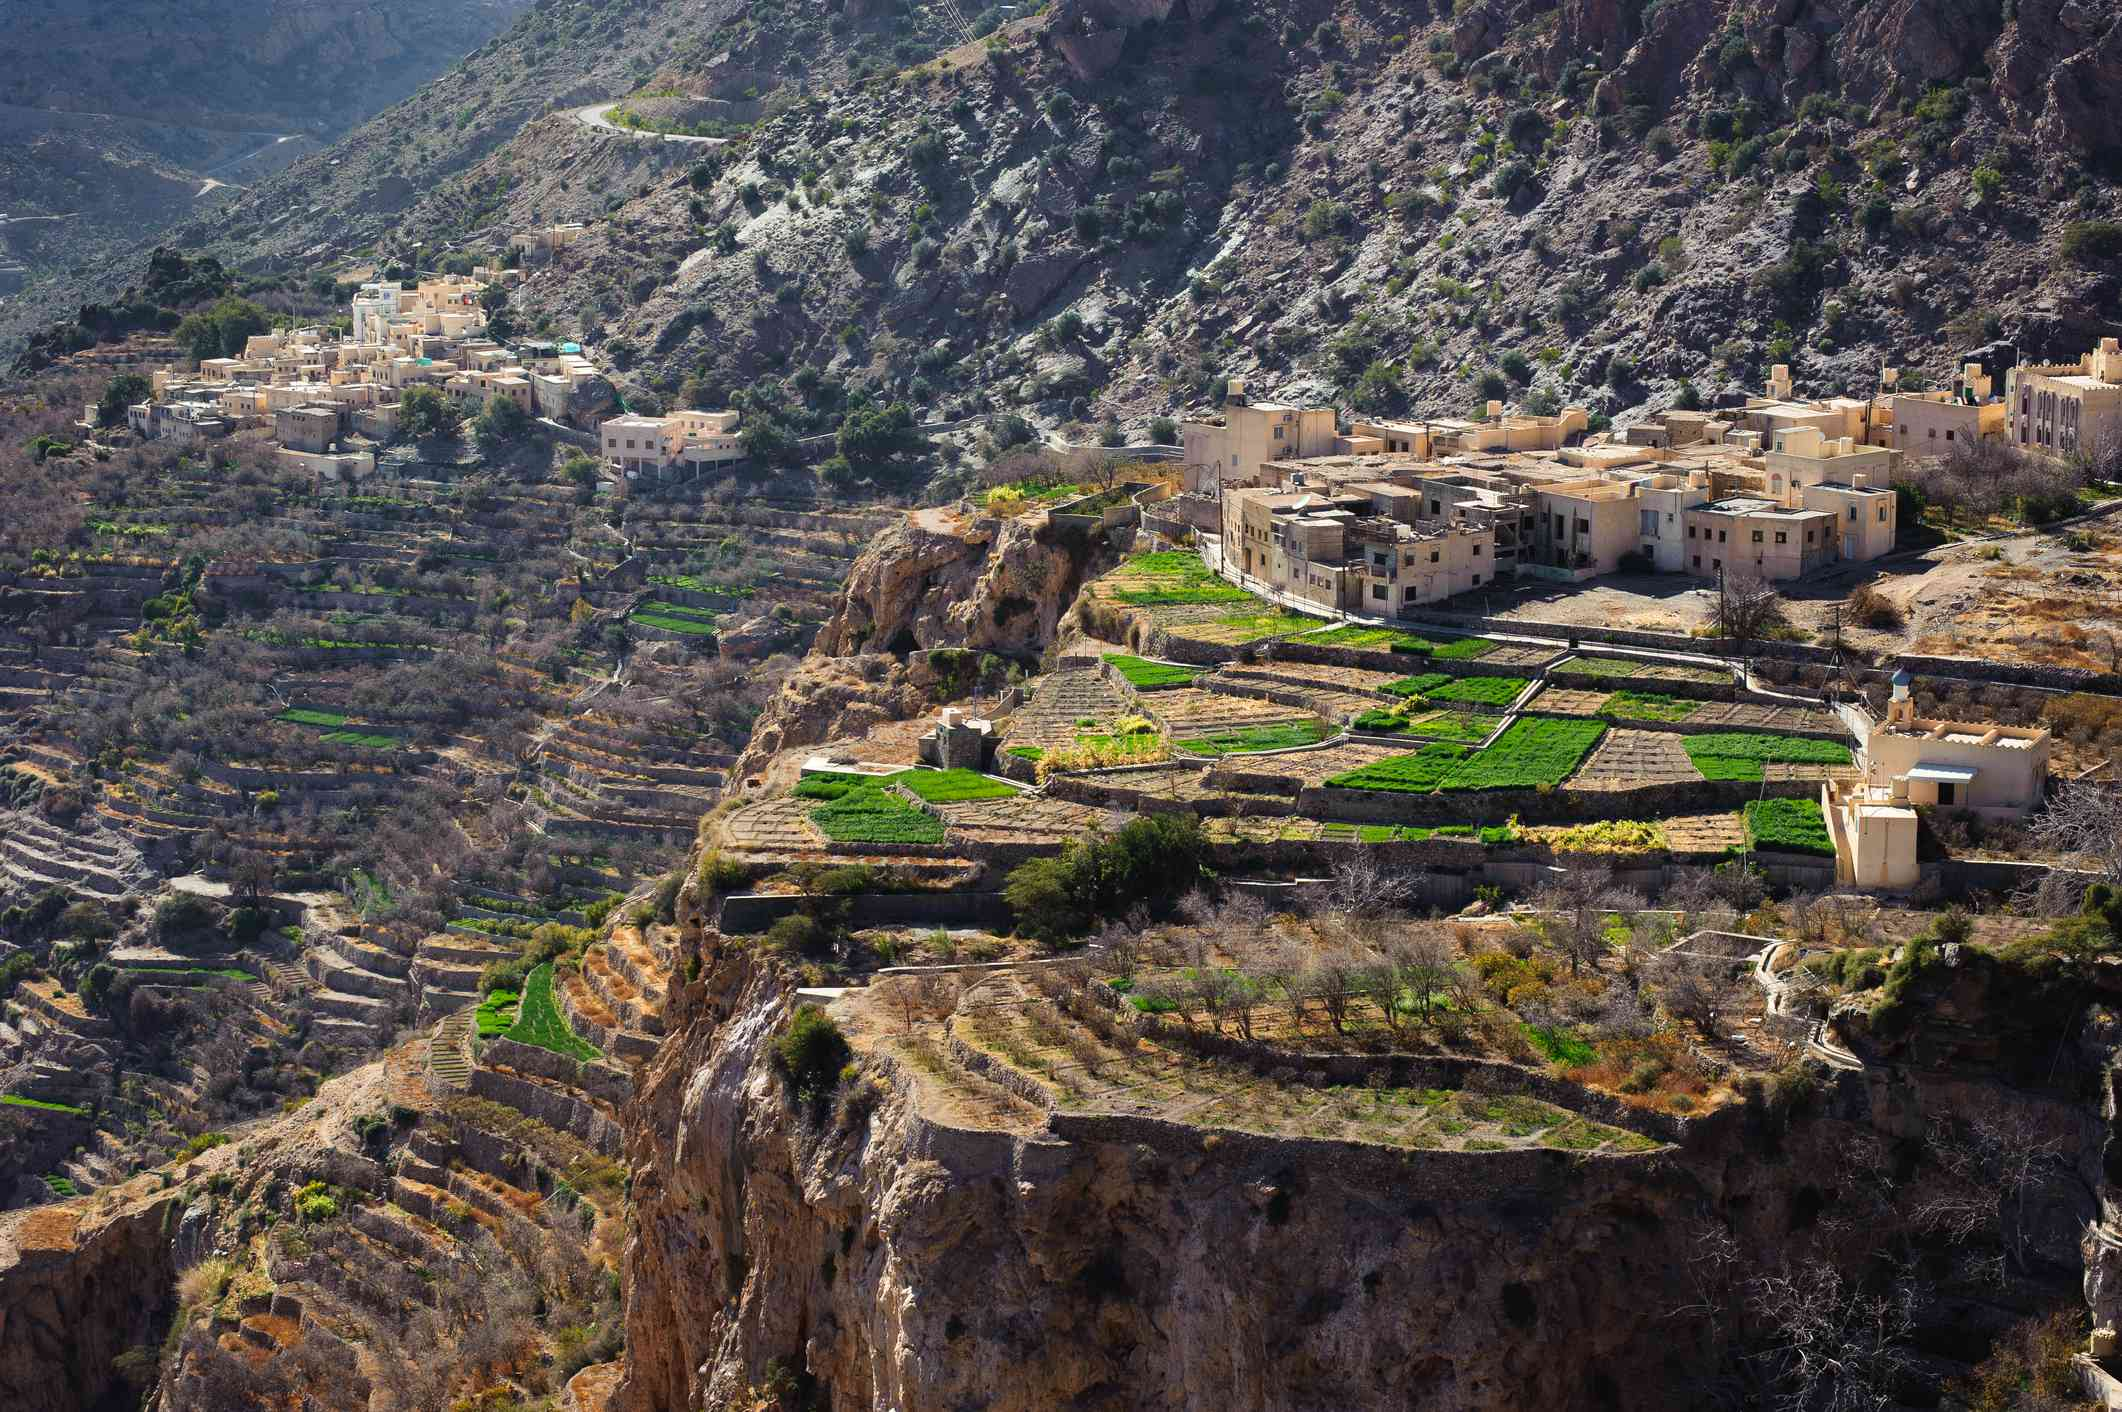 Agricultural terraces and villages precariously perched on the side of a cliff in the Jebel Akhdar region of the Hajar Mountains near Nizwa, Oman